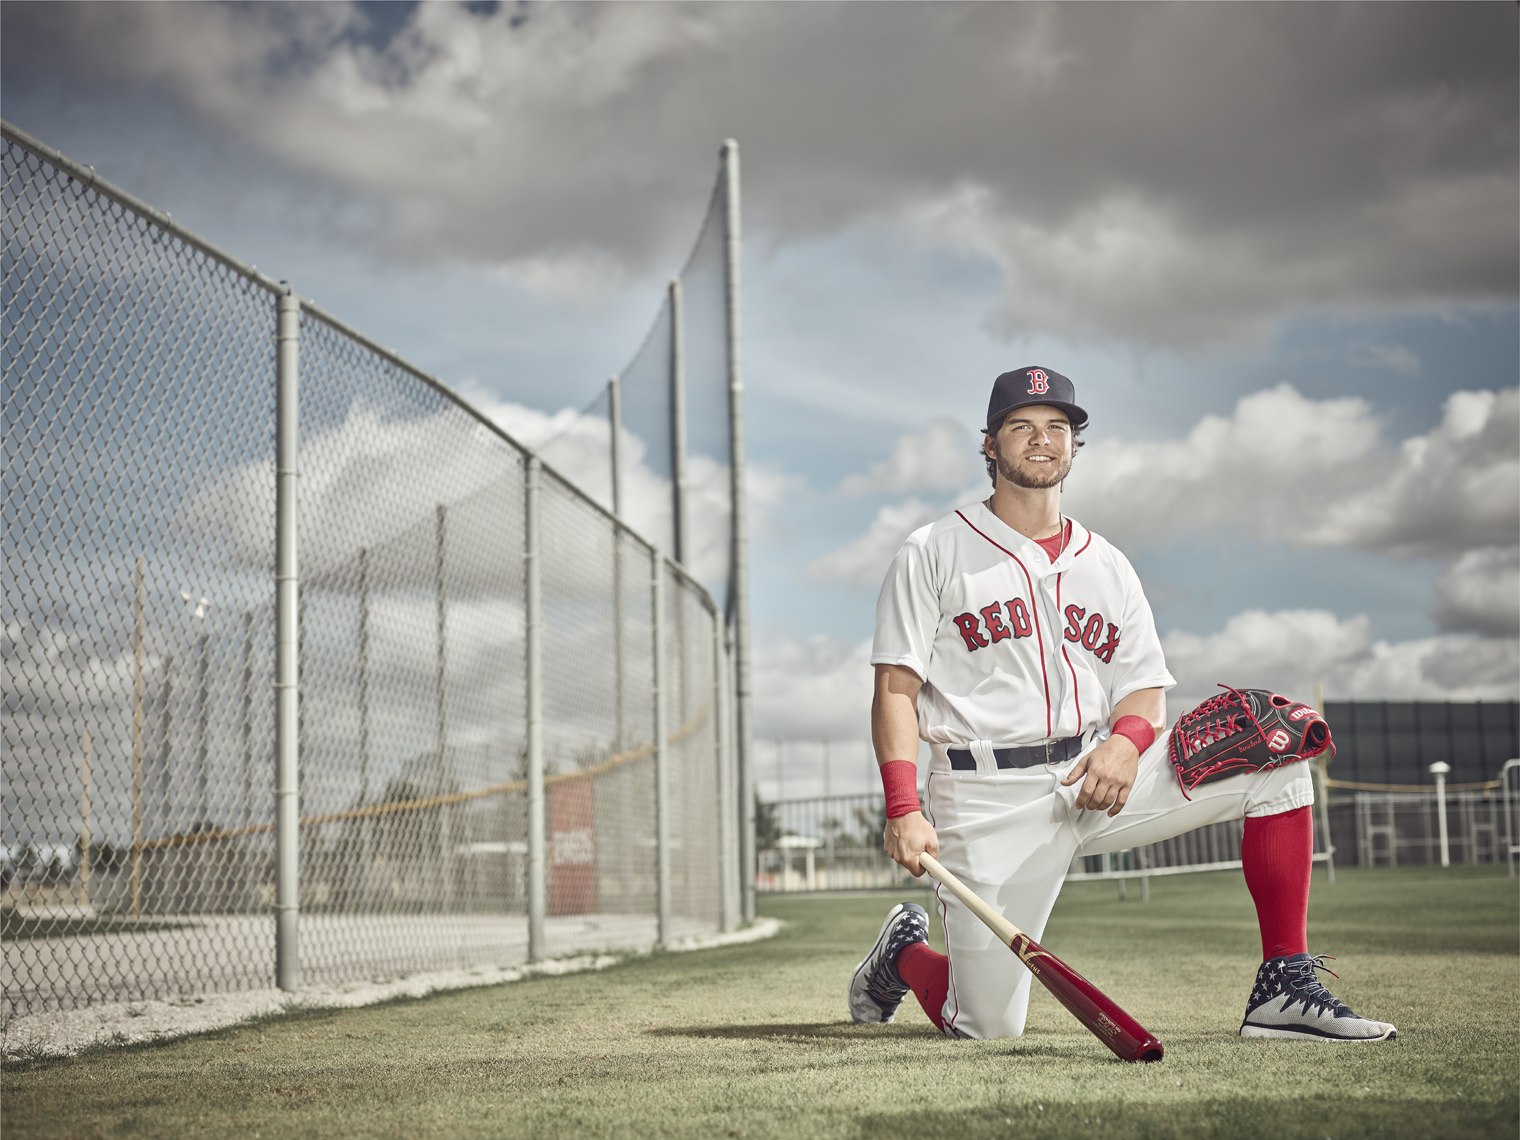 Andrew Benintendi  |  Boston Red Sox  Major League Baseball player |